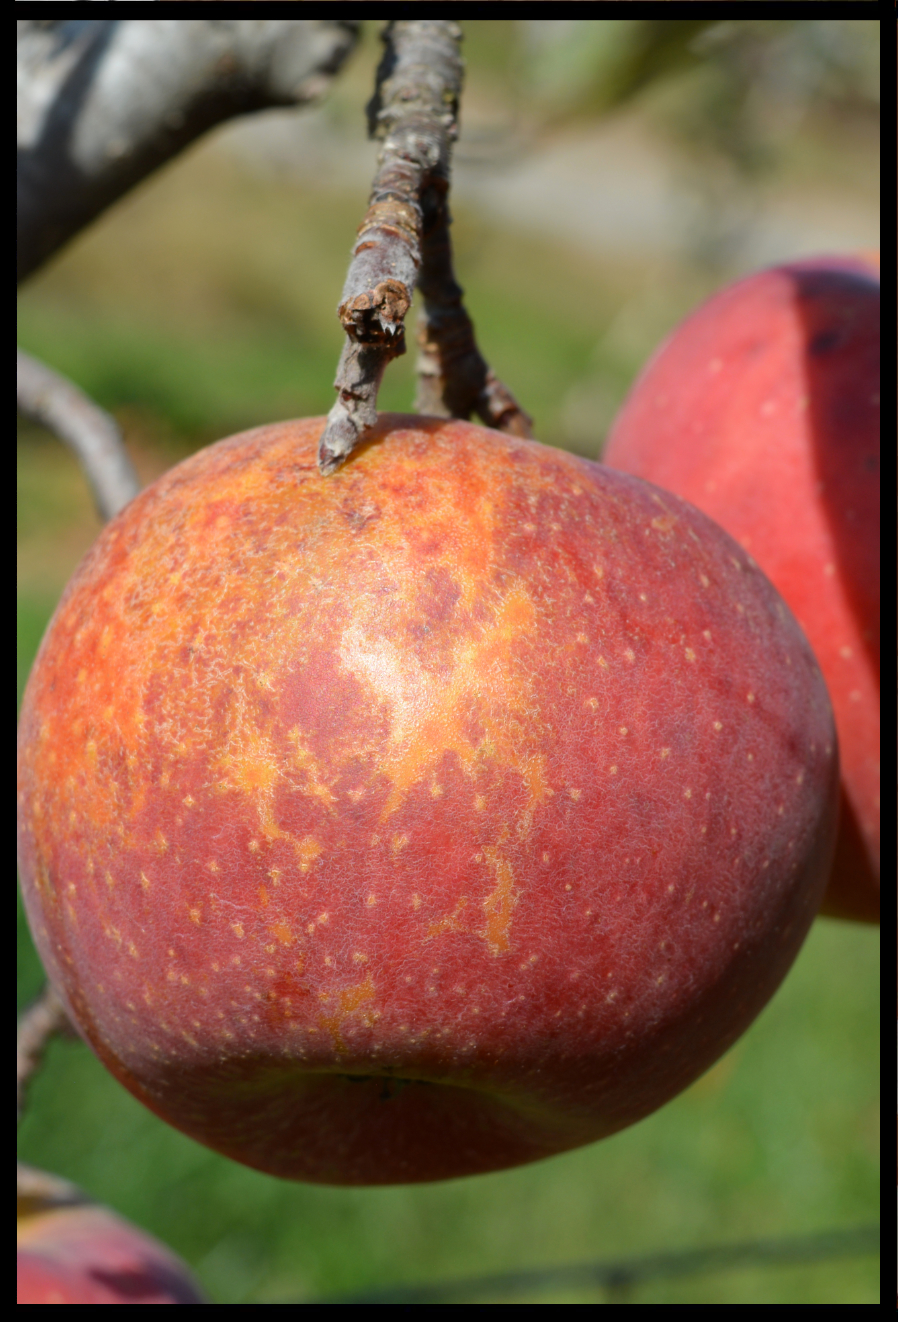 red apple with orangish brown rough skin breaking through in numerous places